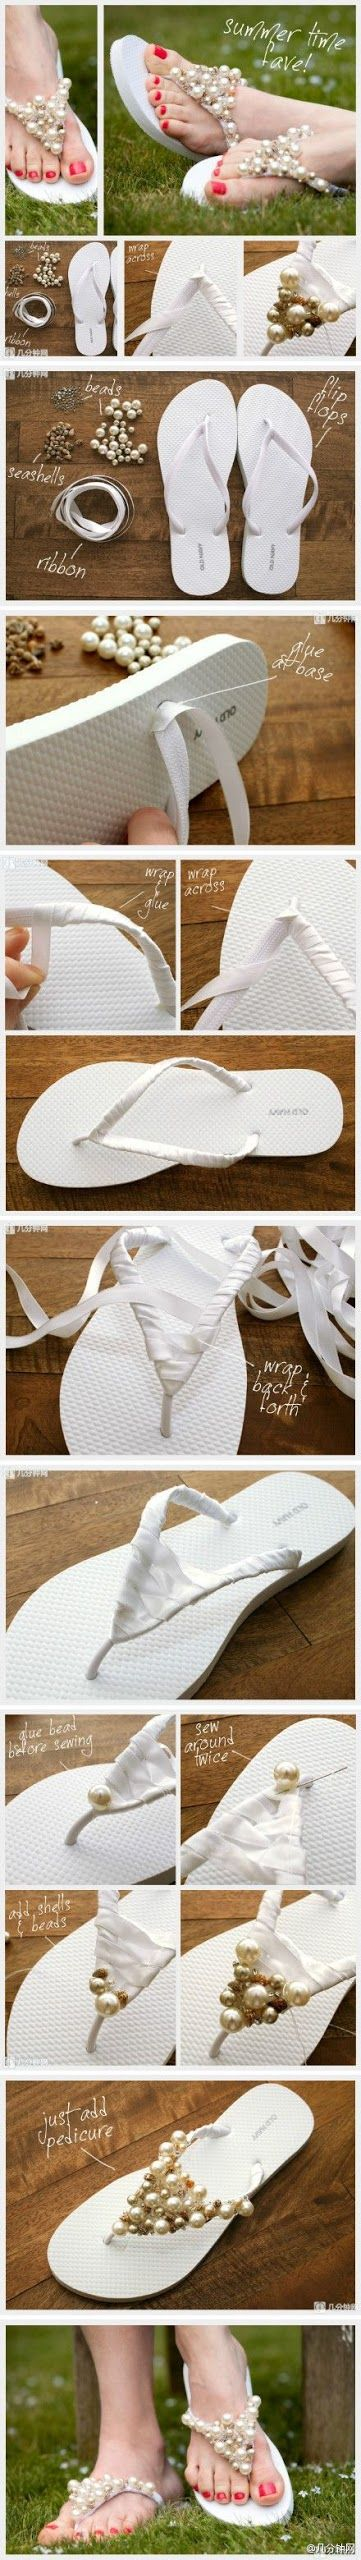 best crafts images on pinterest sewing crafts sewing patterns